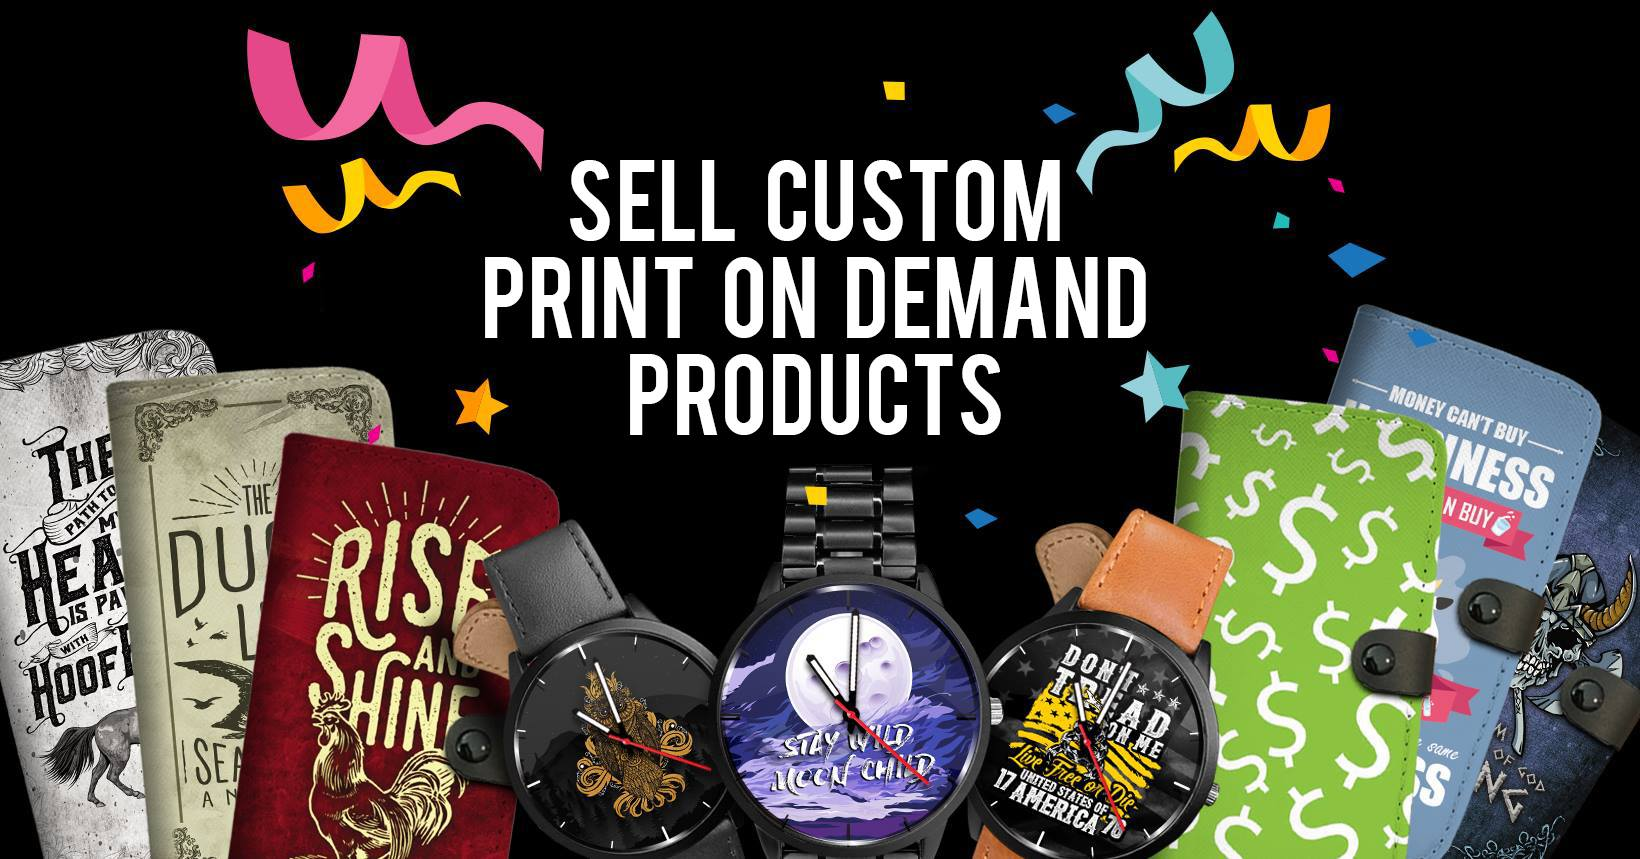 The Best Fulfilment Companies for Print on Demand Selling